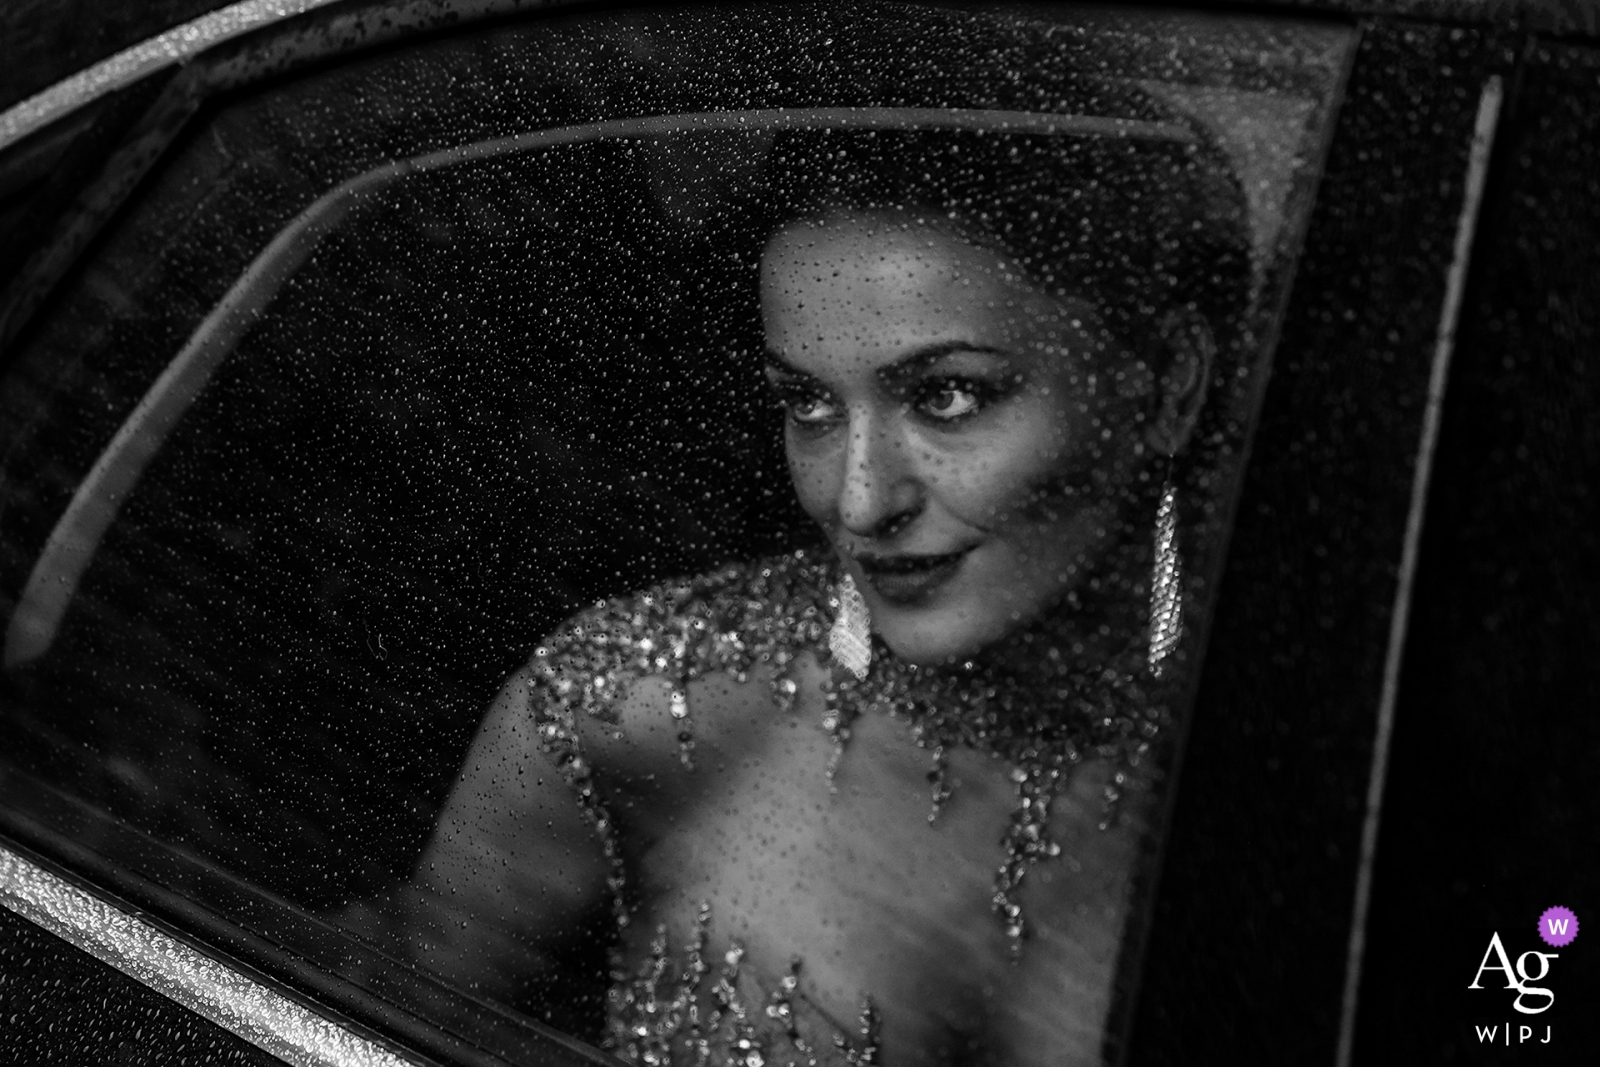 Chicago limo bride portrait on wedding day | Creative black and white photography